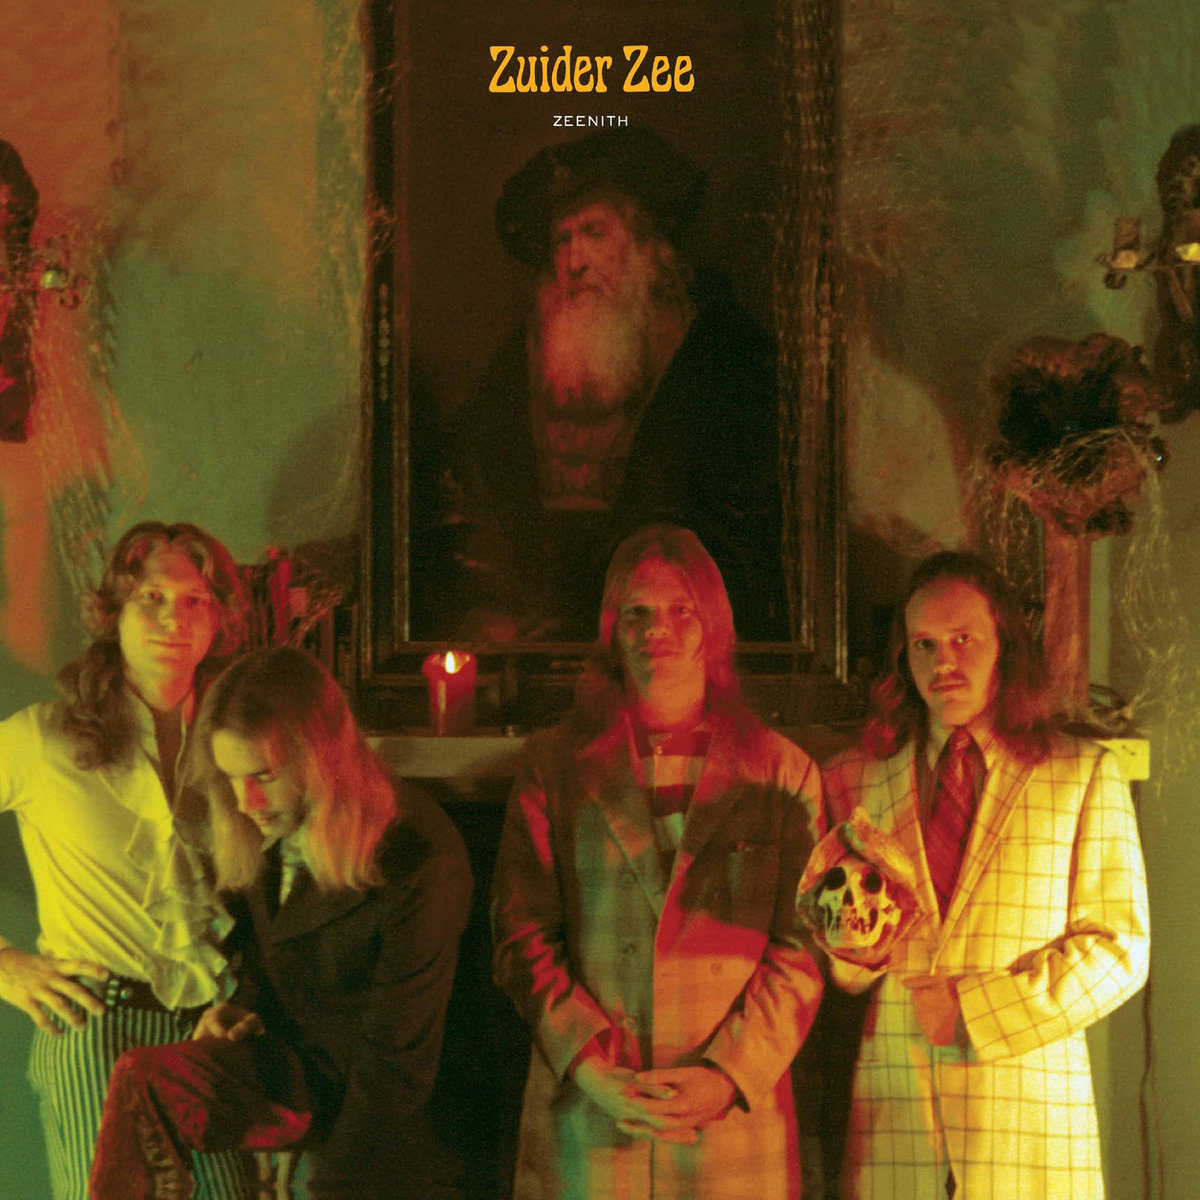 Zuider Zee – Zeenith (Light in the Attic Records)